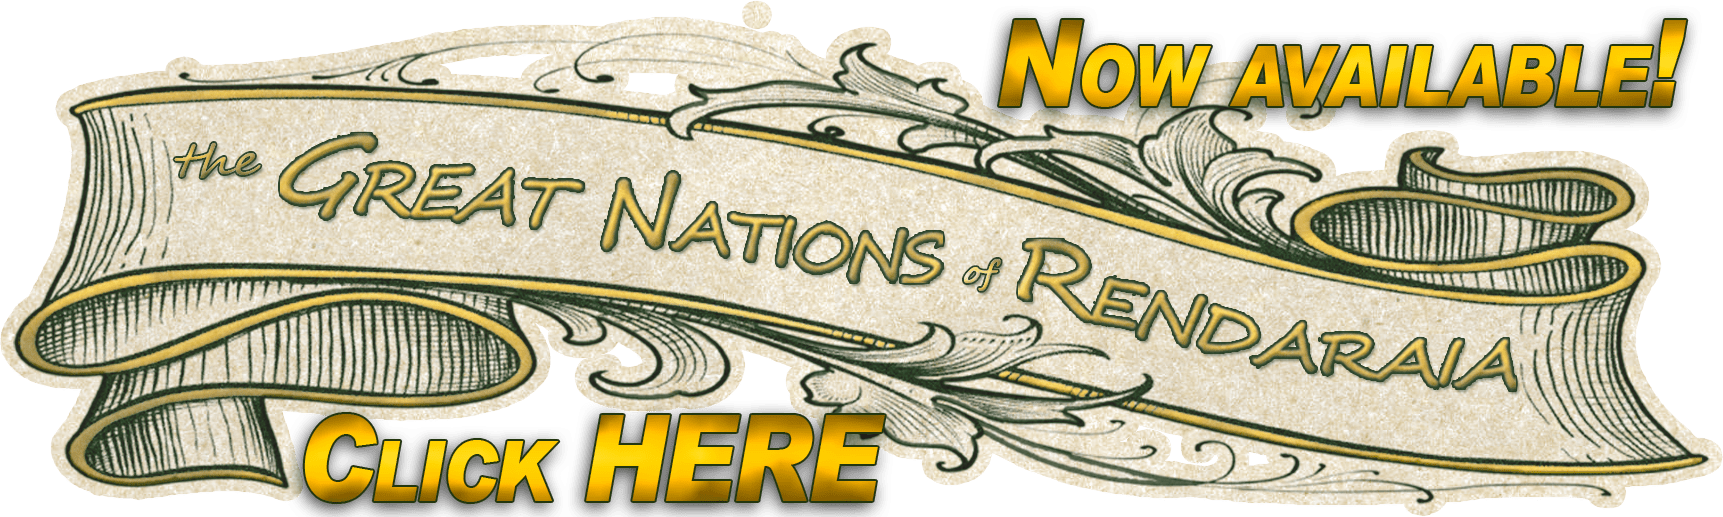 Children of Gaia: The Great Nations of Rendaraia now available